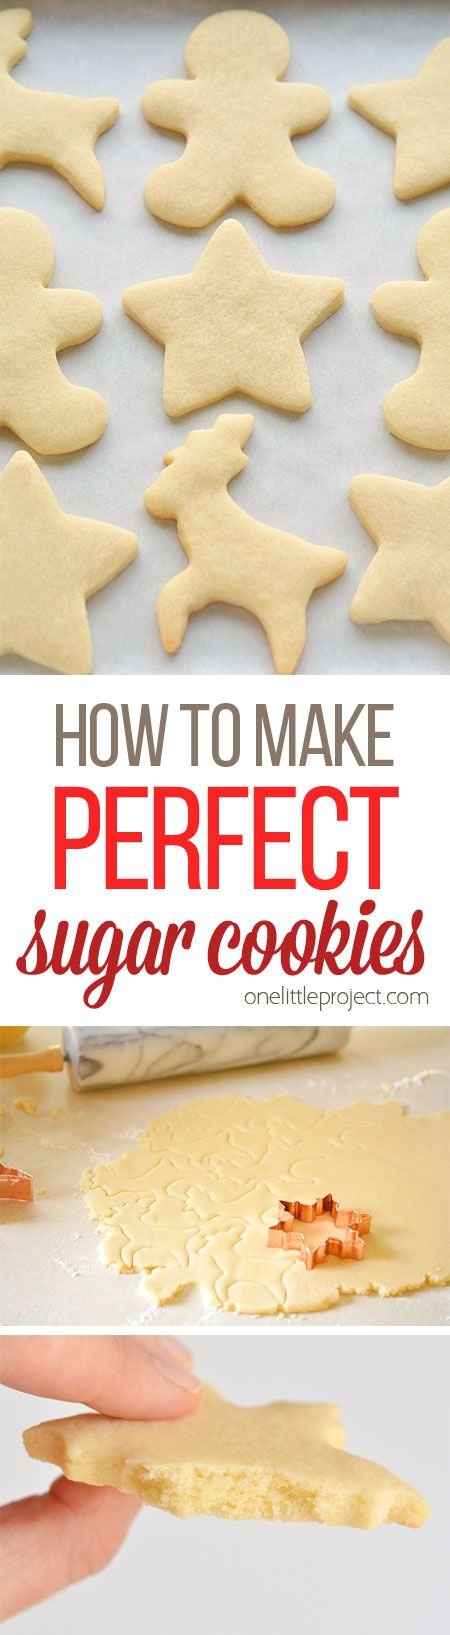 This recipe makes PERFECT sugar cookies! Theyre delicious both with and witho